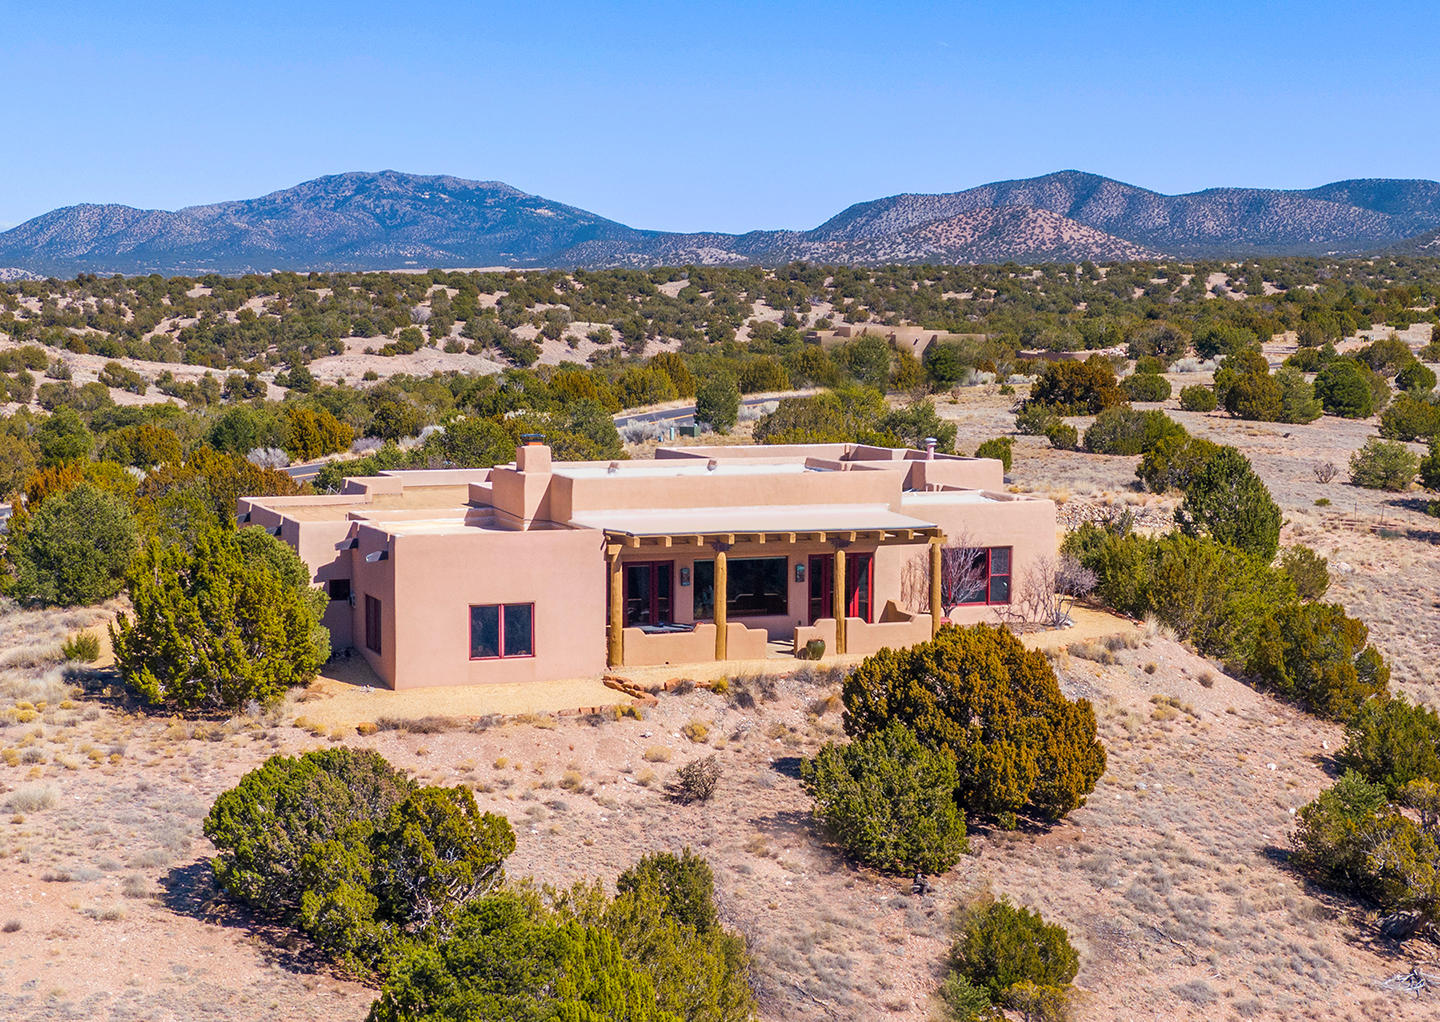 Finally, relax in the quiet, guarded & gated, discrete premier mountain neighborhood of San Pedro Overlook. Offering stunning Sandia mountain views this authentic modern-day adobe-style home will have you in awe at every turn. Constructed with thick E-crete walls this hypoallergenic home incorporates multiple-green features. Open floor plan offers plenty of space for everyone and includes two large living areas, office, and 3 bedrooms each with their own en suite bathroom. The gourmet chefs kitchen equipped with Viking professional appliances, large center island, and ample cabinetry is open to the great room and allows for easy entertaining. Other features include colossal viga ceilings, Alder doors throughout, built-in bookcases, covered patios, and a serene front entry courtyard.